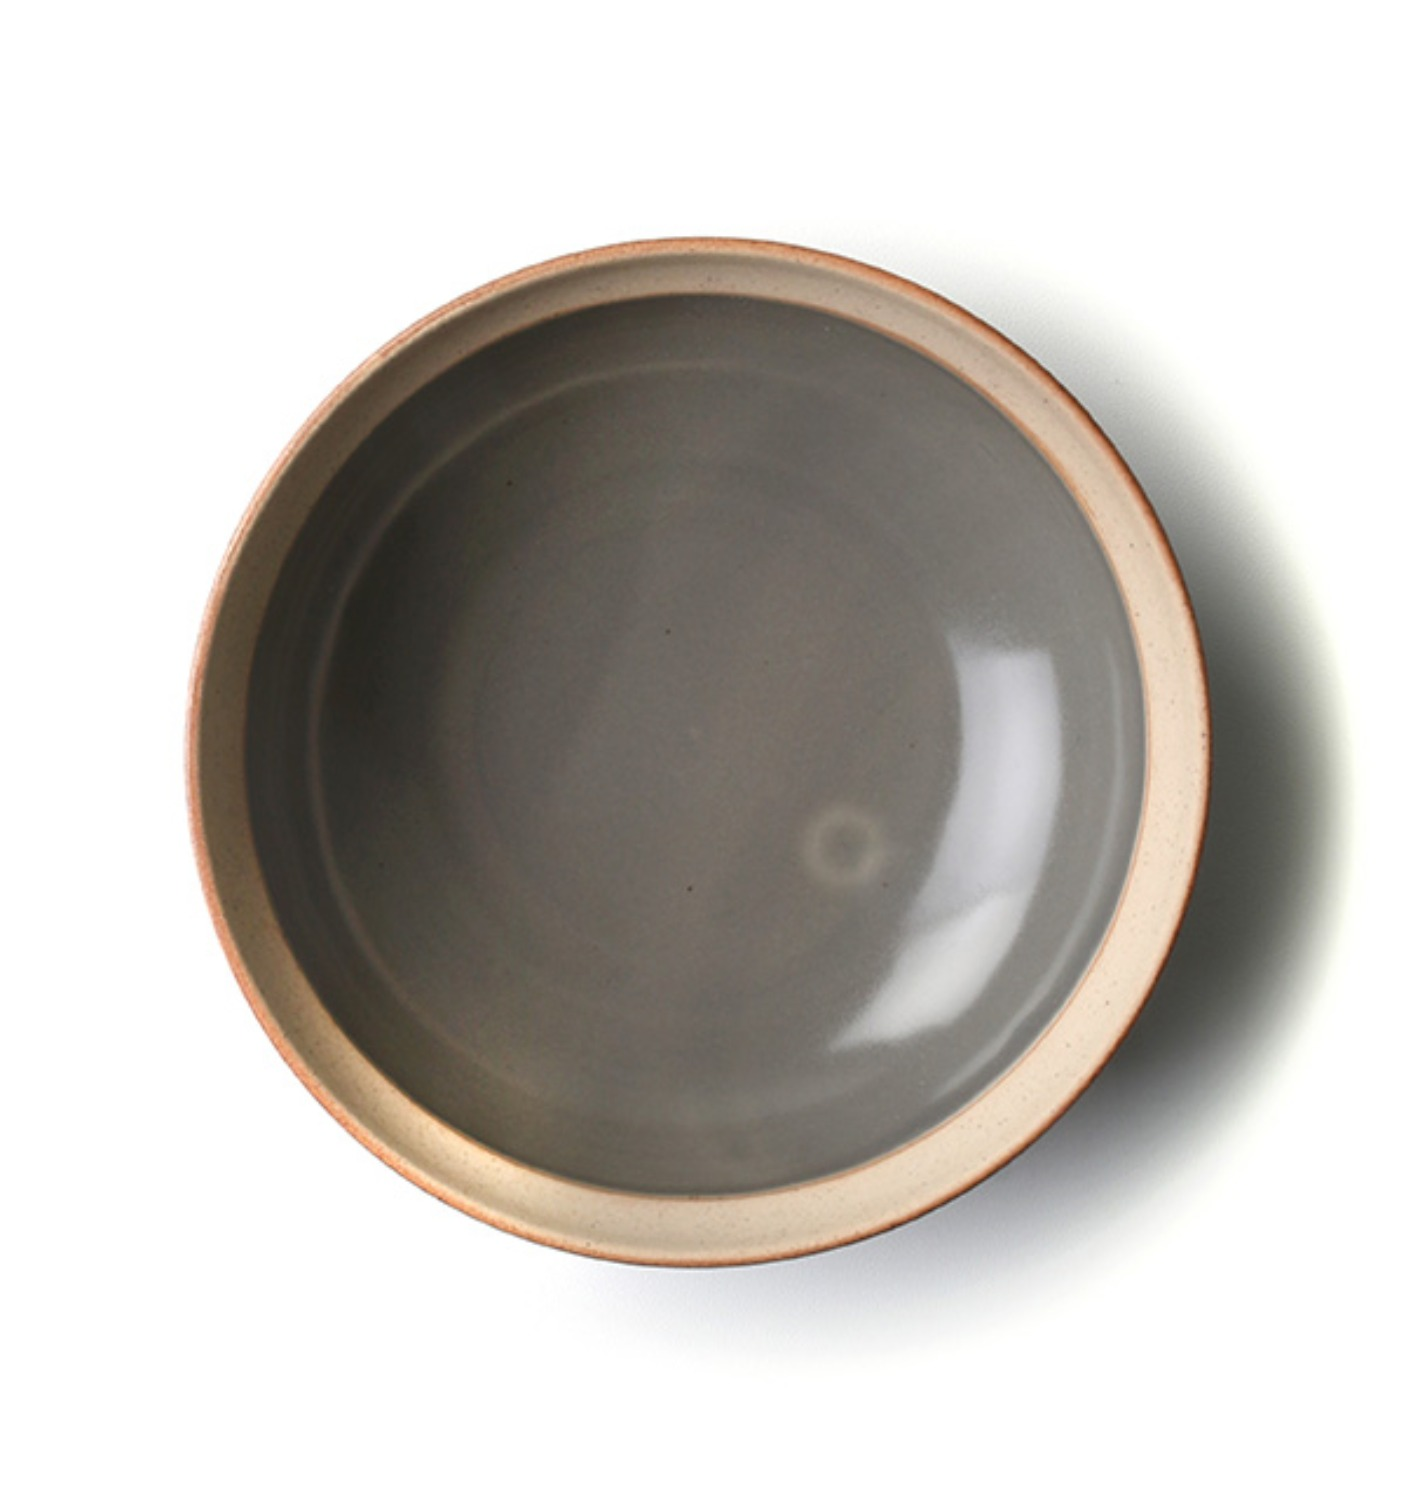 Bowl S by HASAMI for hobo GREY (HB-02301)